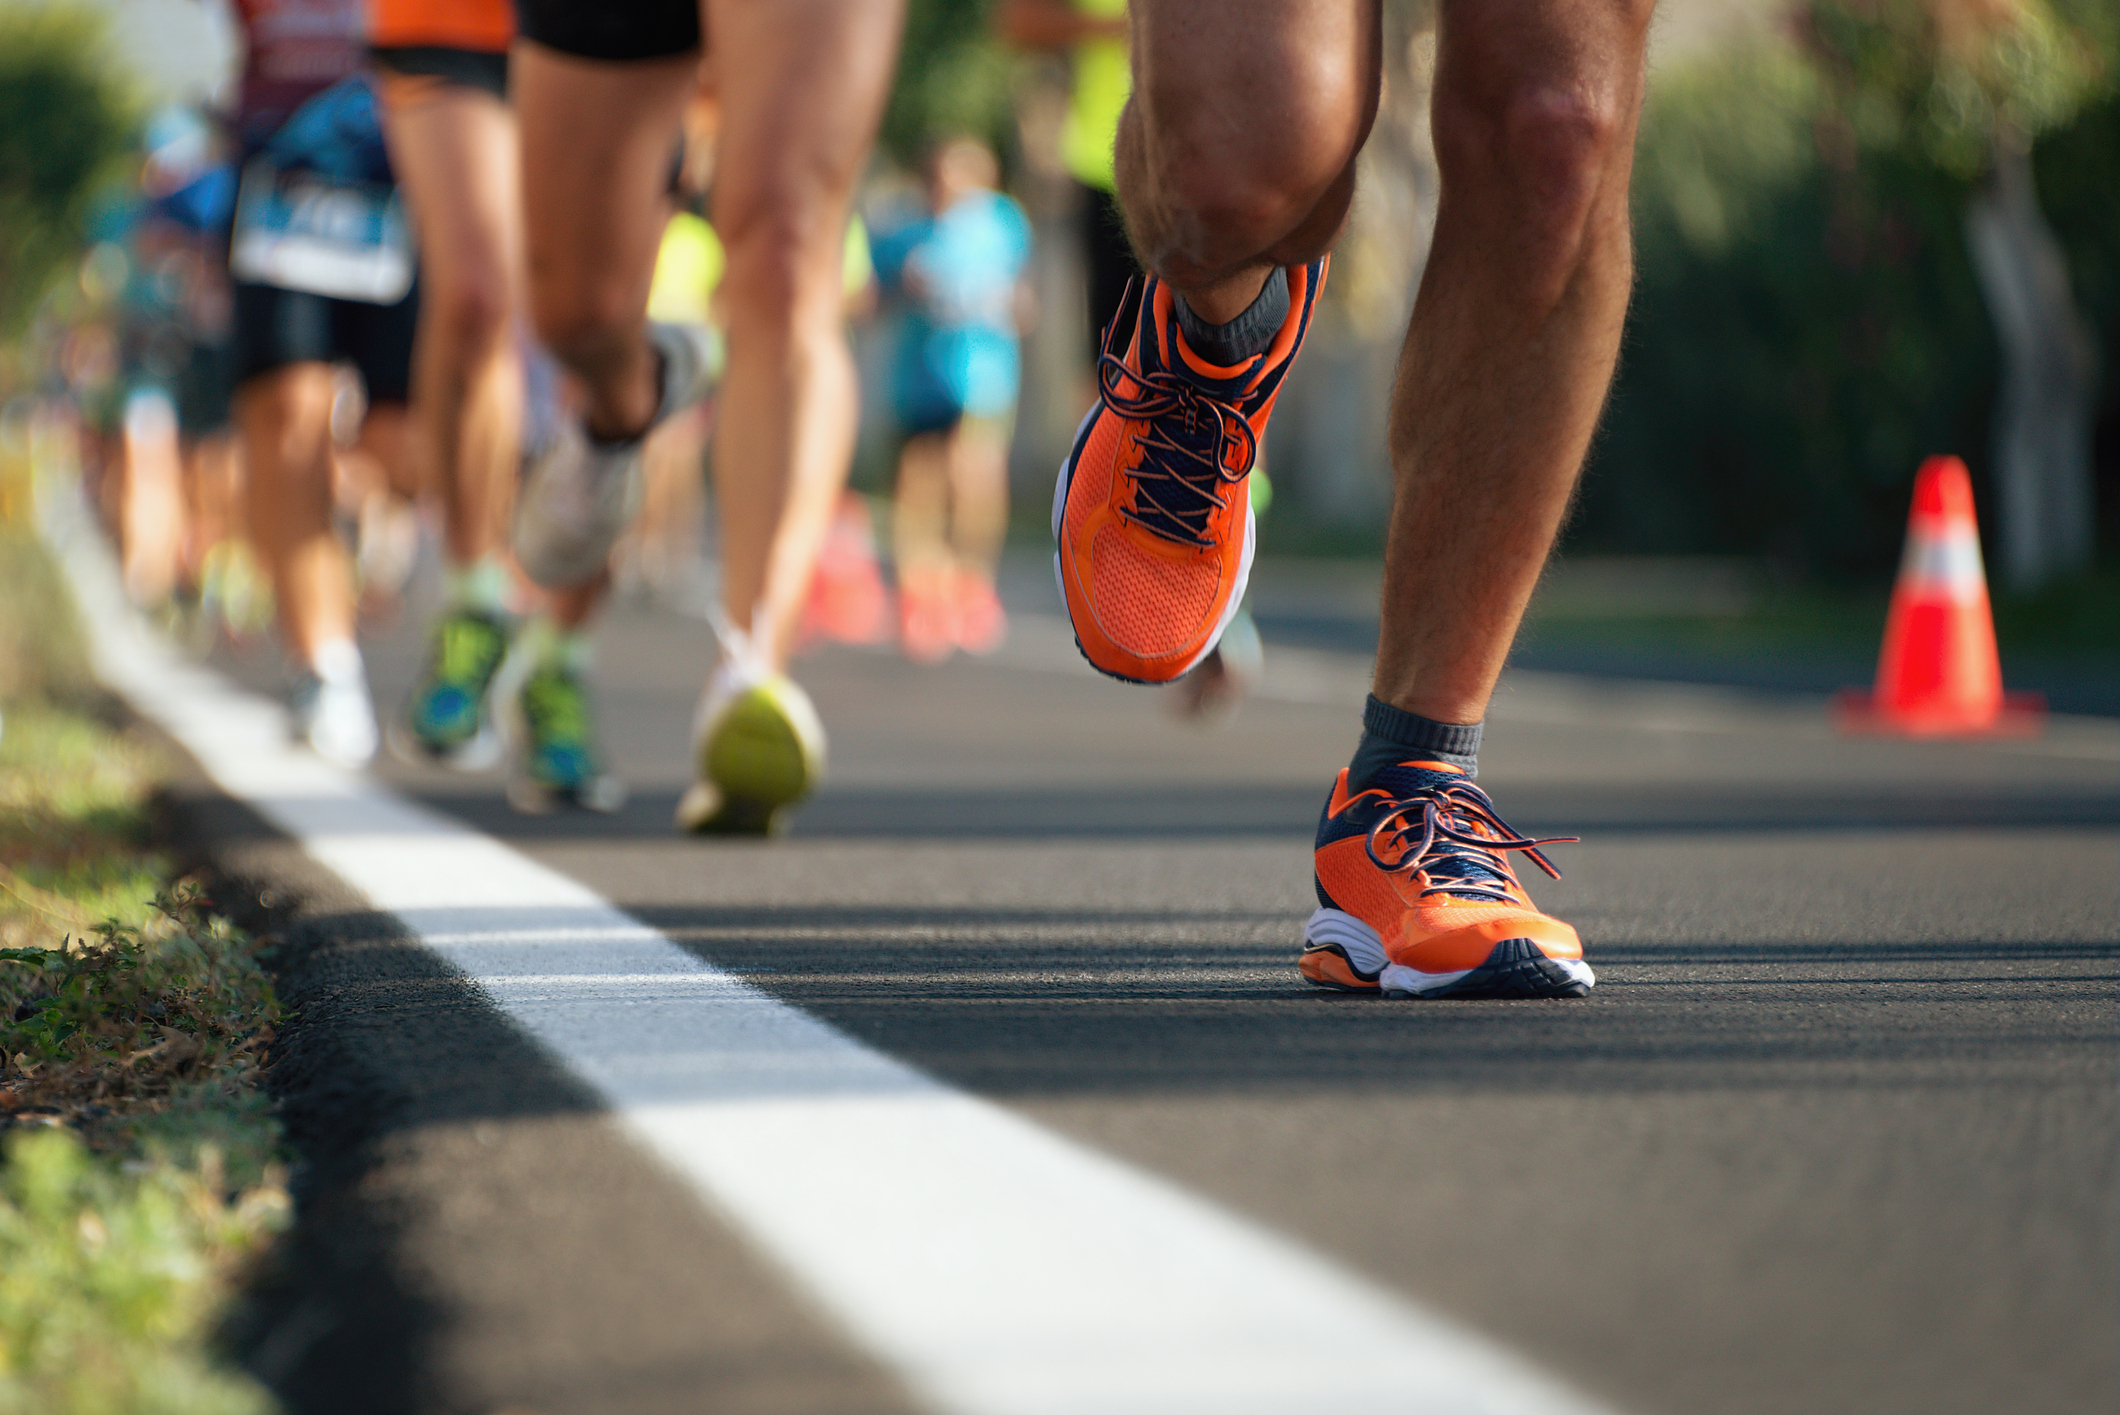 feet of racers running